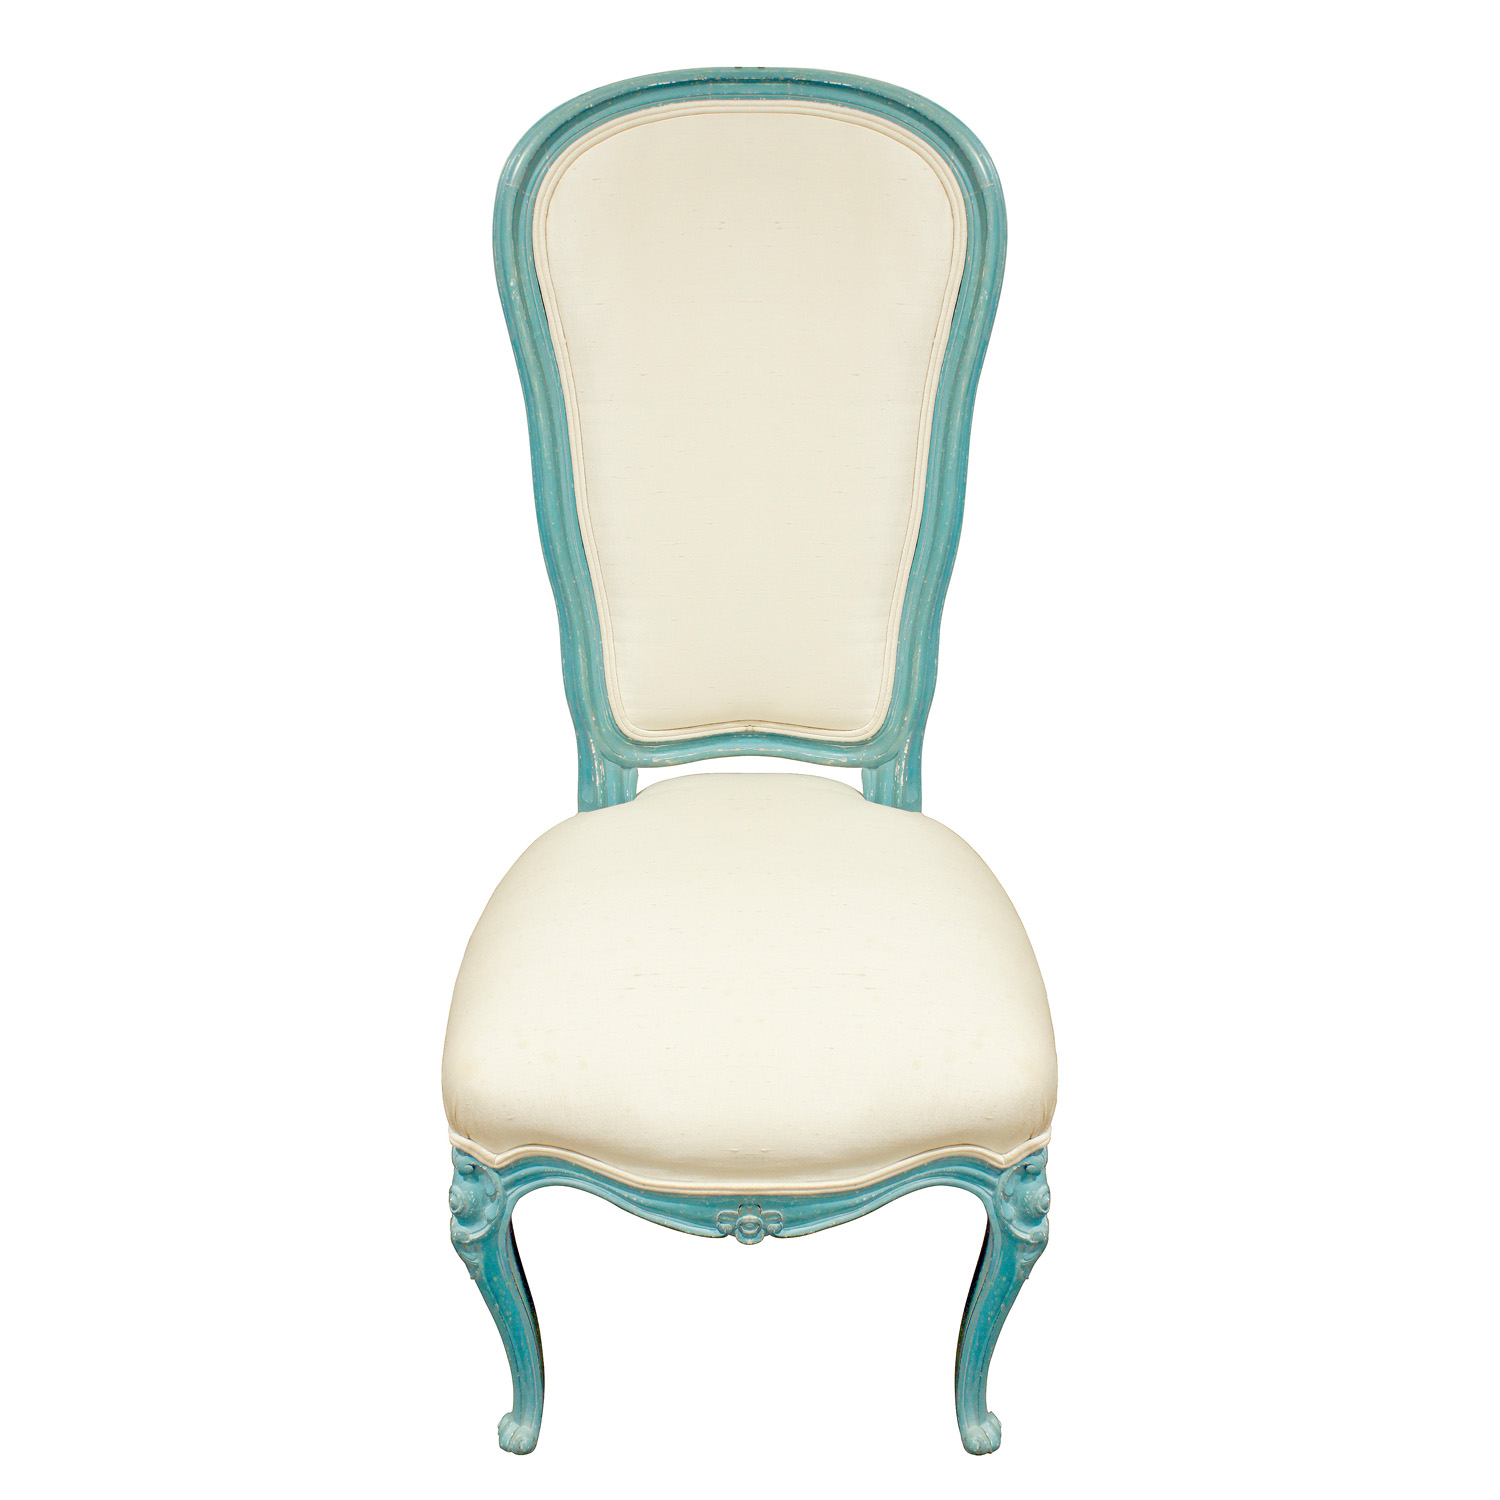 Auffray 120 blue lqr+silk diningchairs178 fnt.jpg